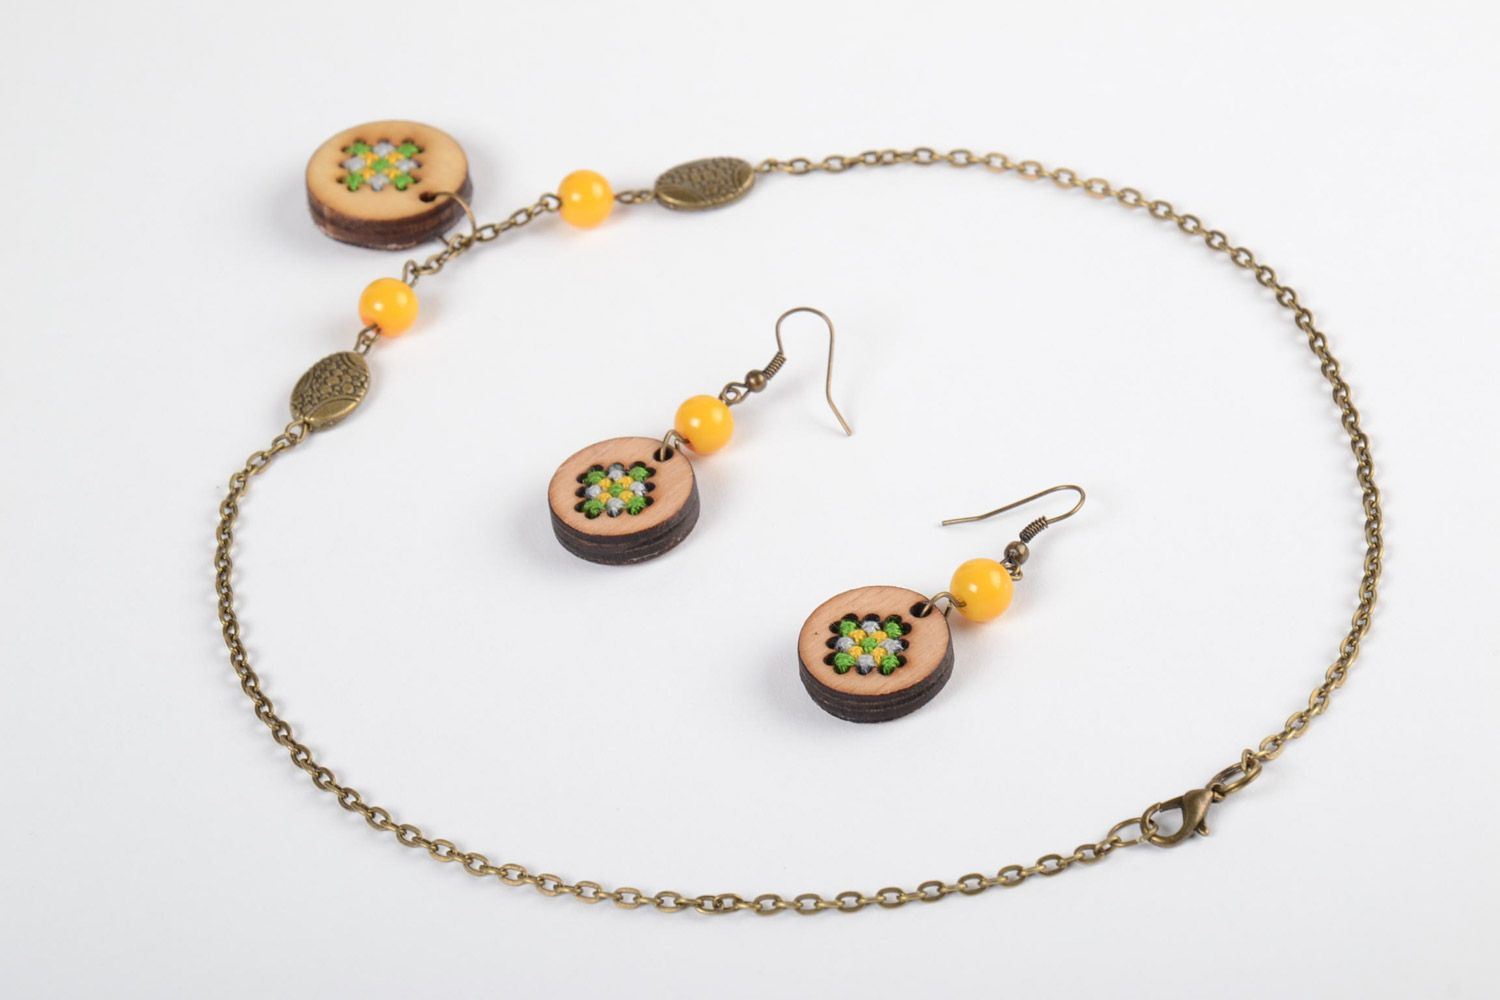 Handmade plywood jewellery round earrings and pendant with embroidery in ethnic style photo 4